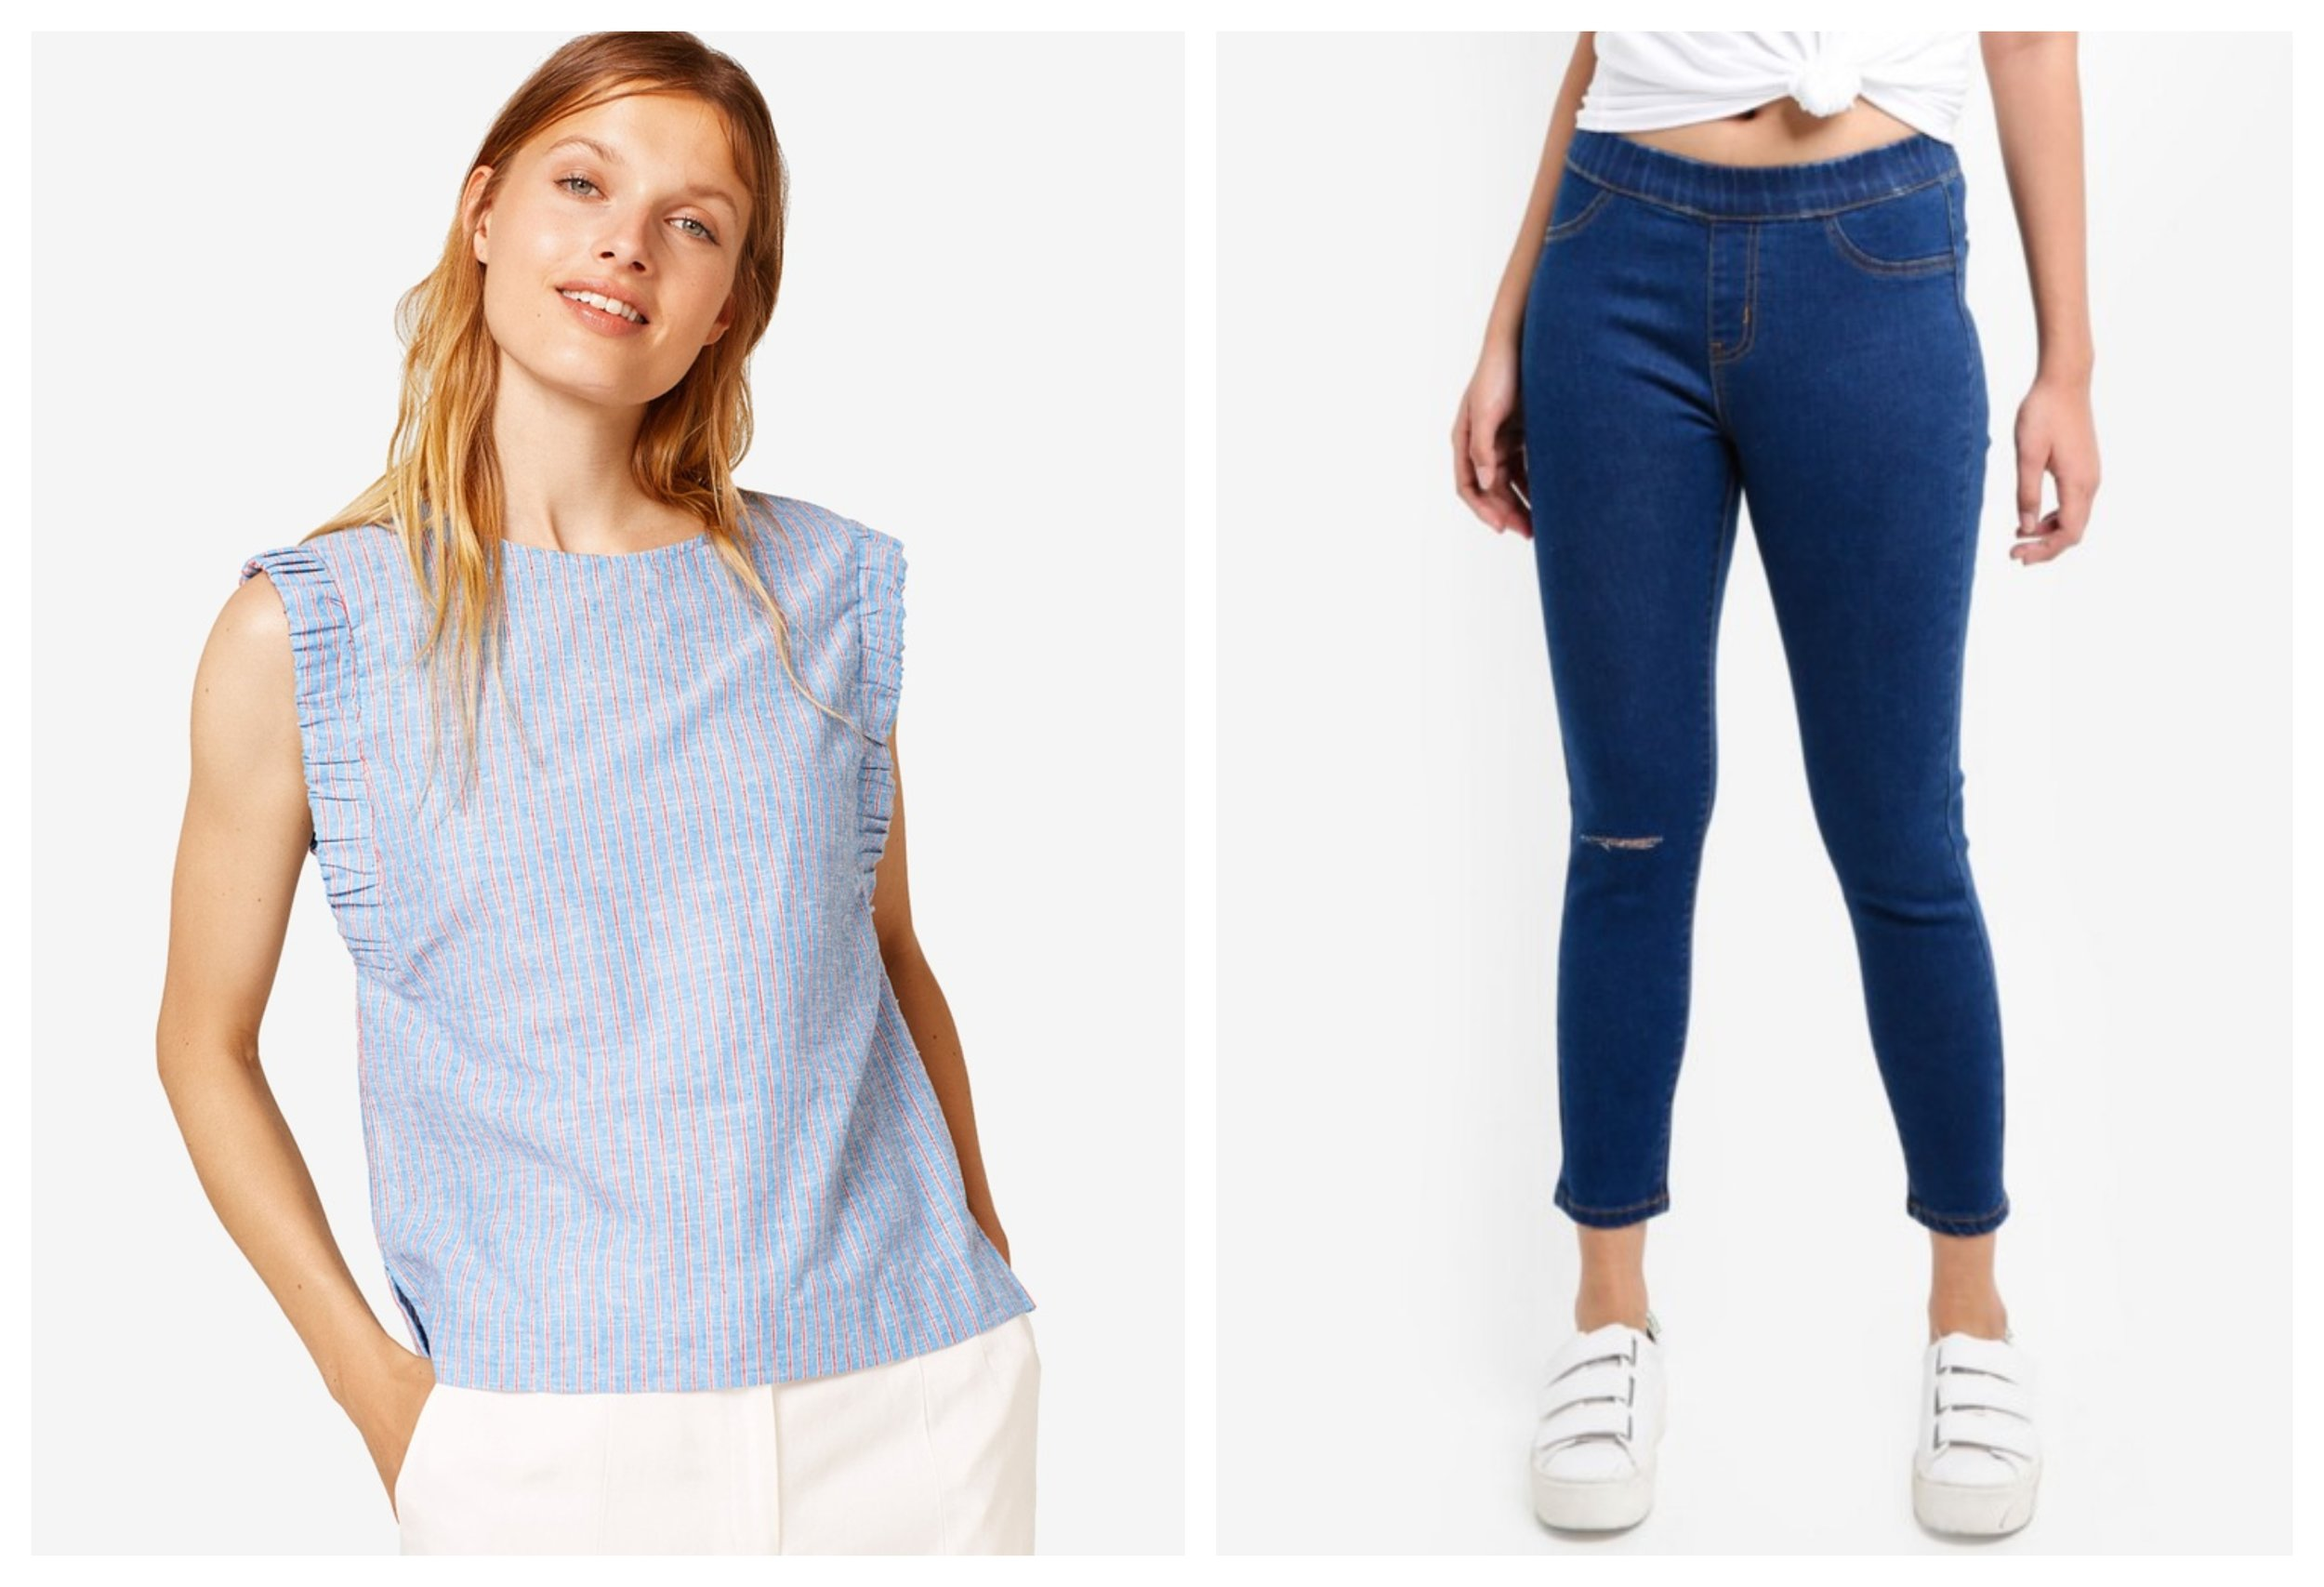 ESPRIT Woven Sleeveless Blouse  |  Something Borrowed Denim Jeggings